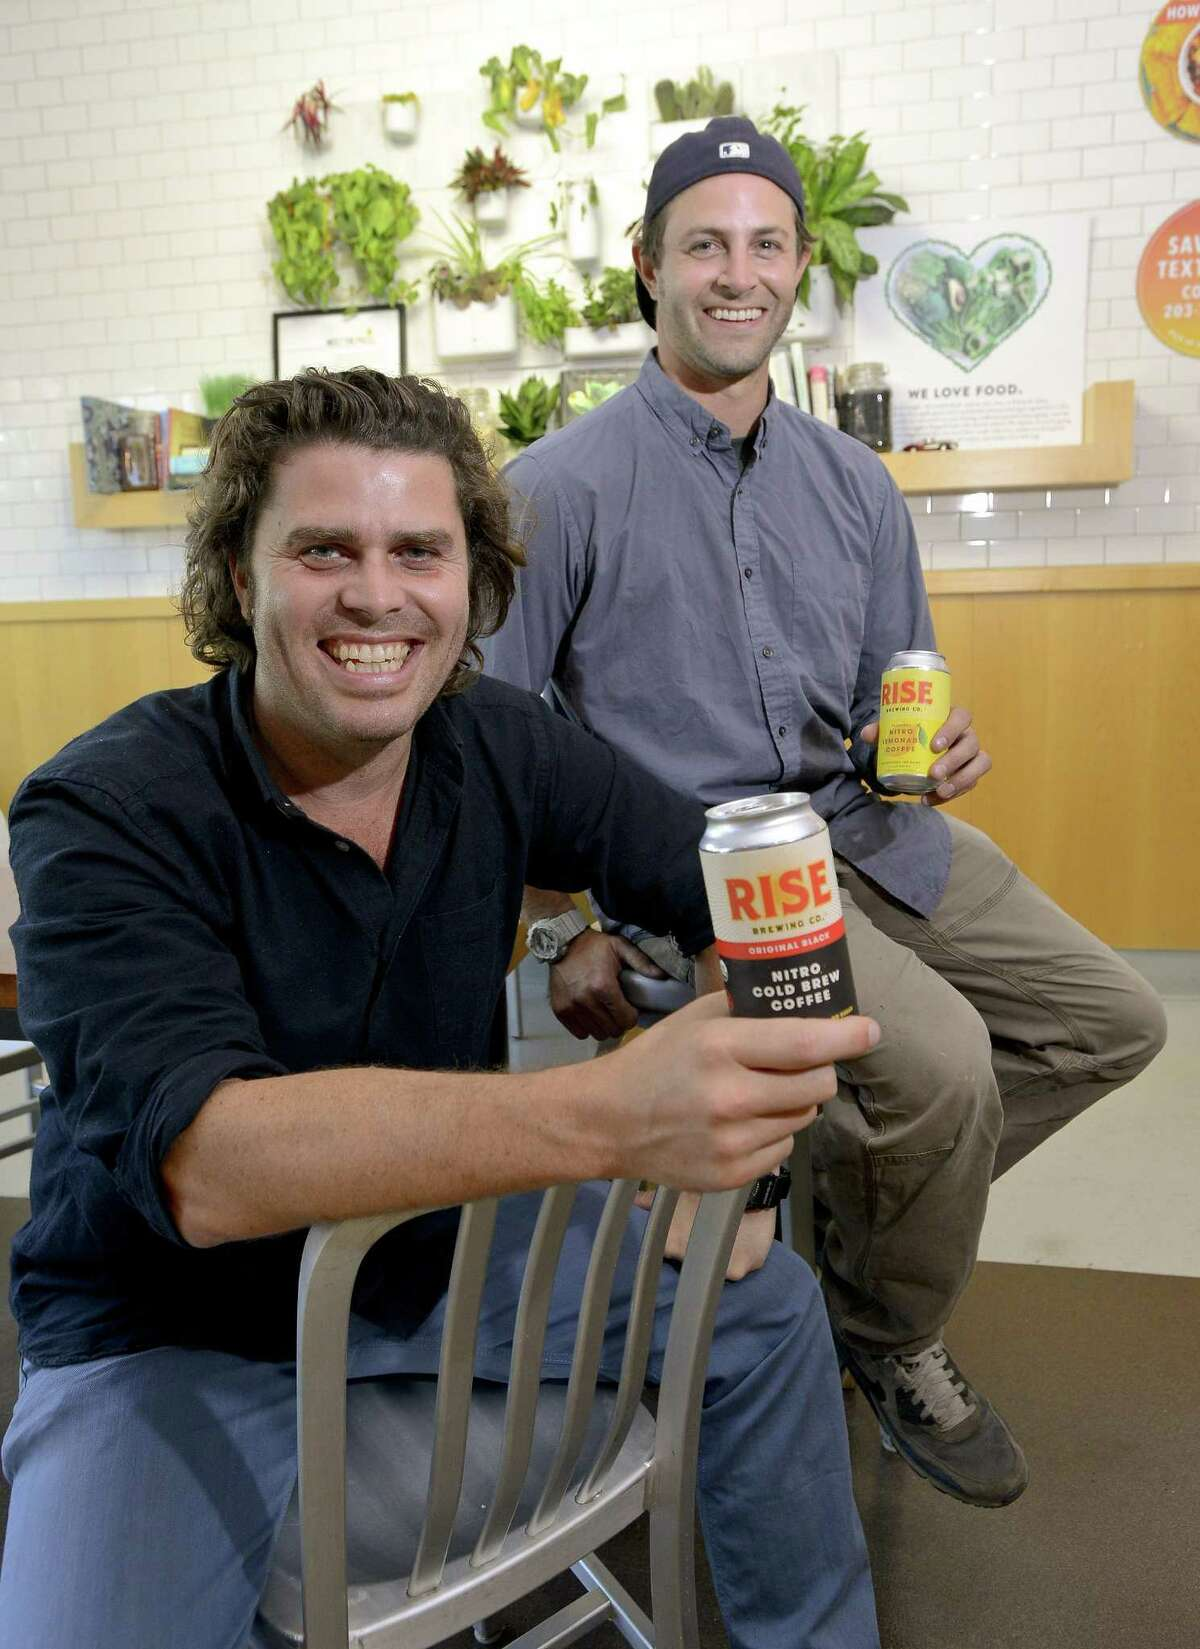 Jarrett McGovern and Justin Weinstein, co-founders of Rise Coffee Company, are photograph at Green and Tonic in Greenwich, Connecticut on Wednesday, August 30, 2017.